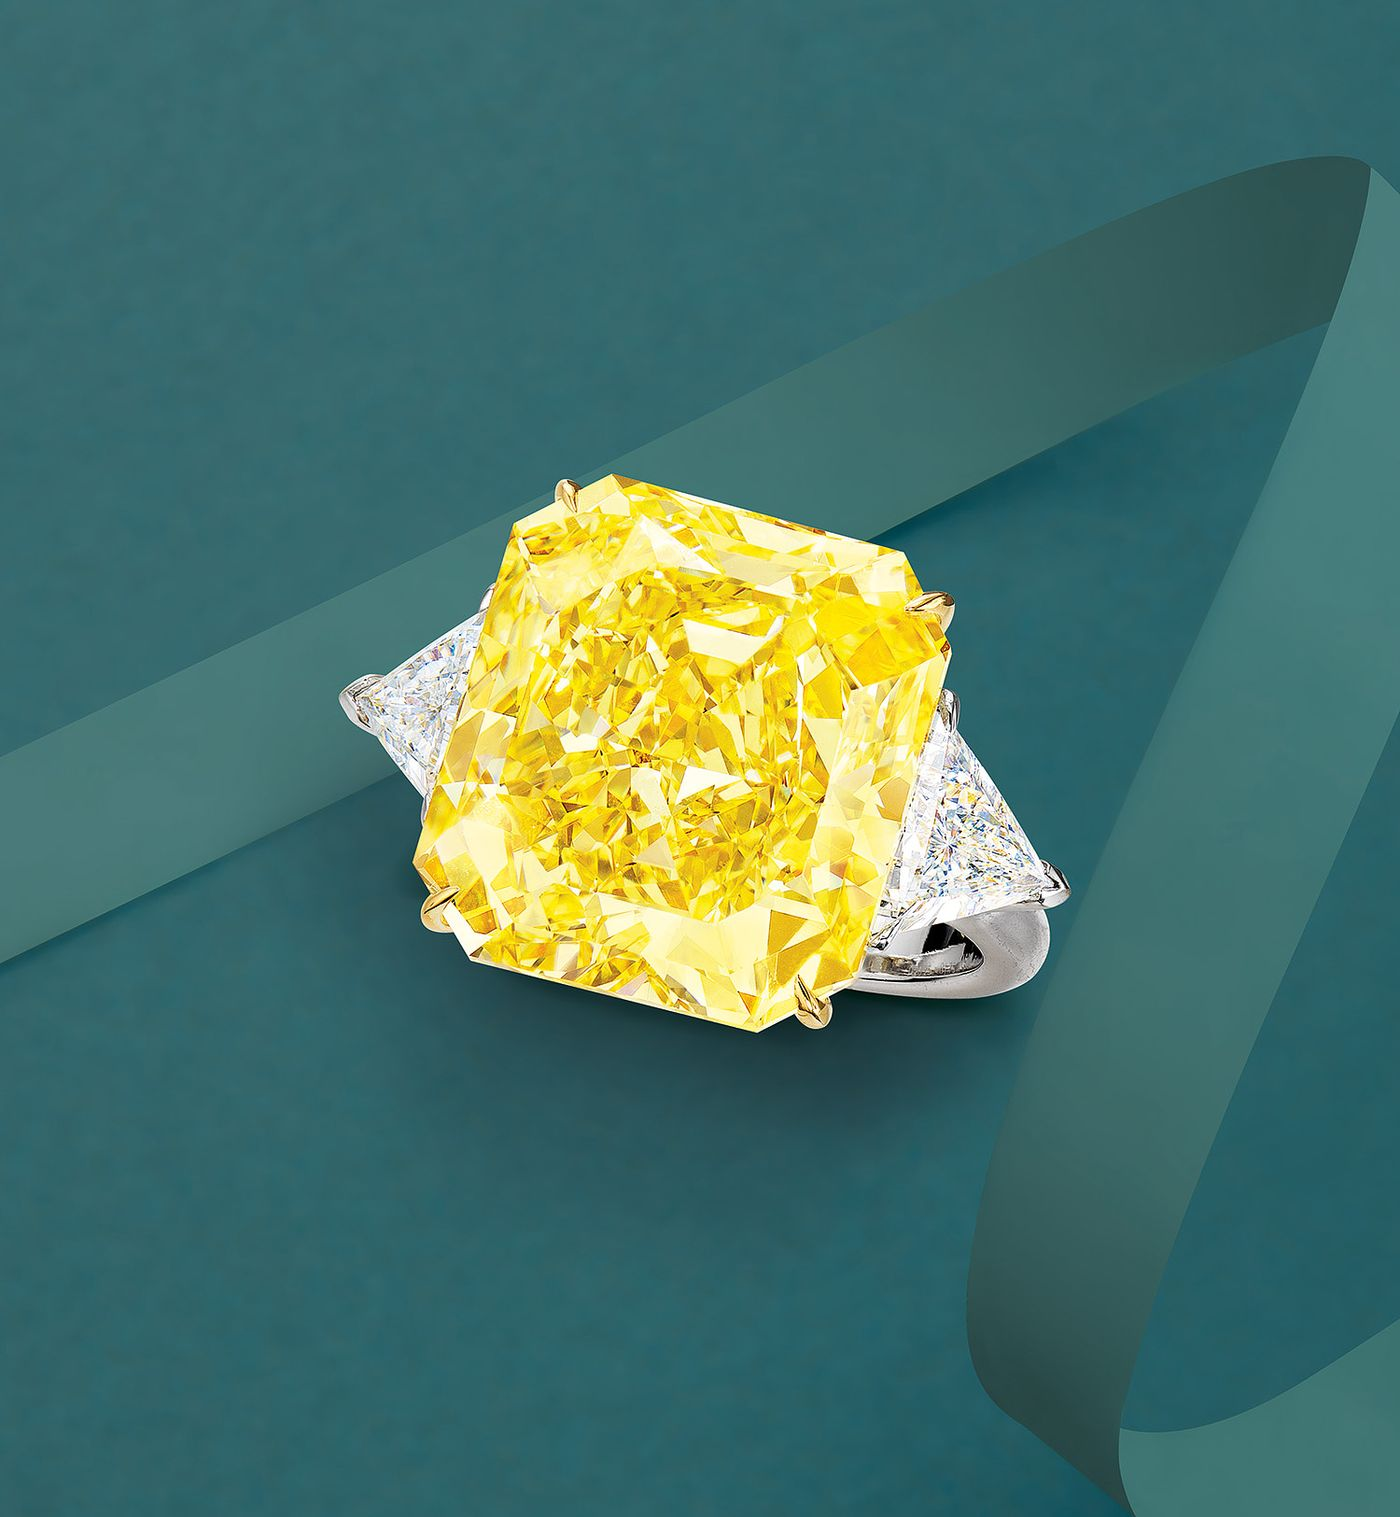 Sized at over 20 carats, specimens of this size, color, clarity and quality are exceedingly rare.